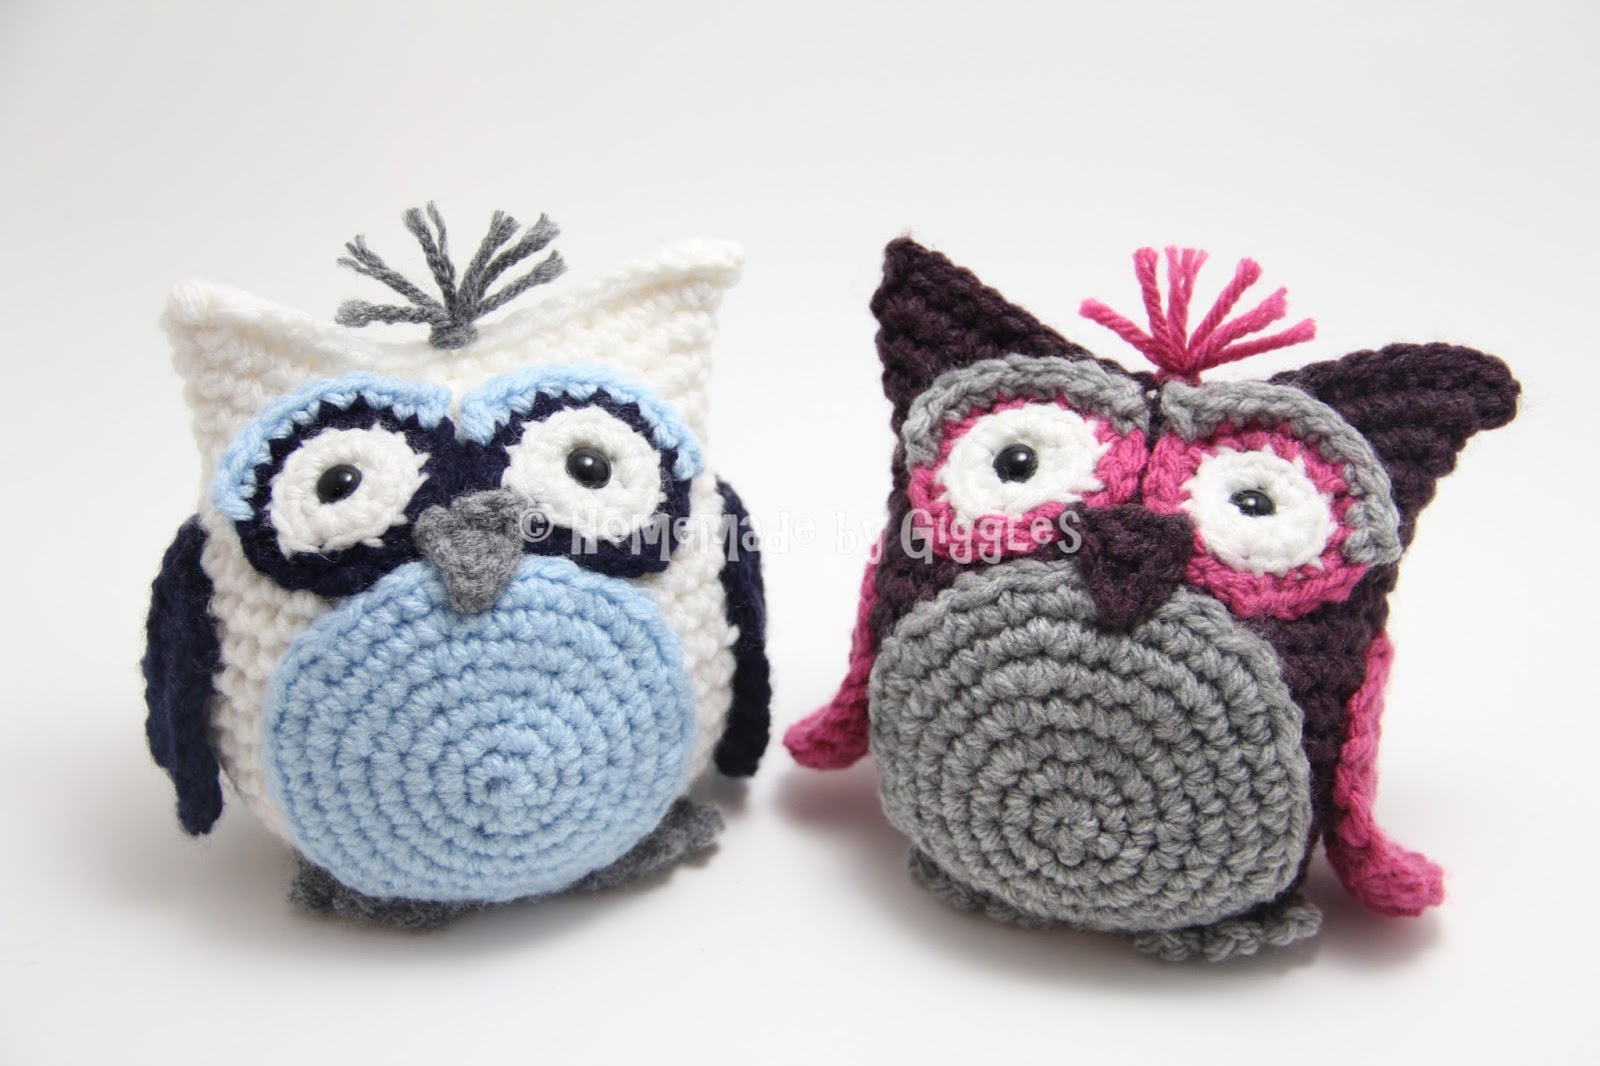 Amigurumi Pattern Free Owl : Homemade by giggles bean bag owl free crochet pattern